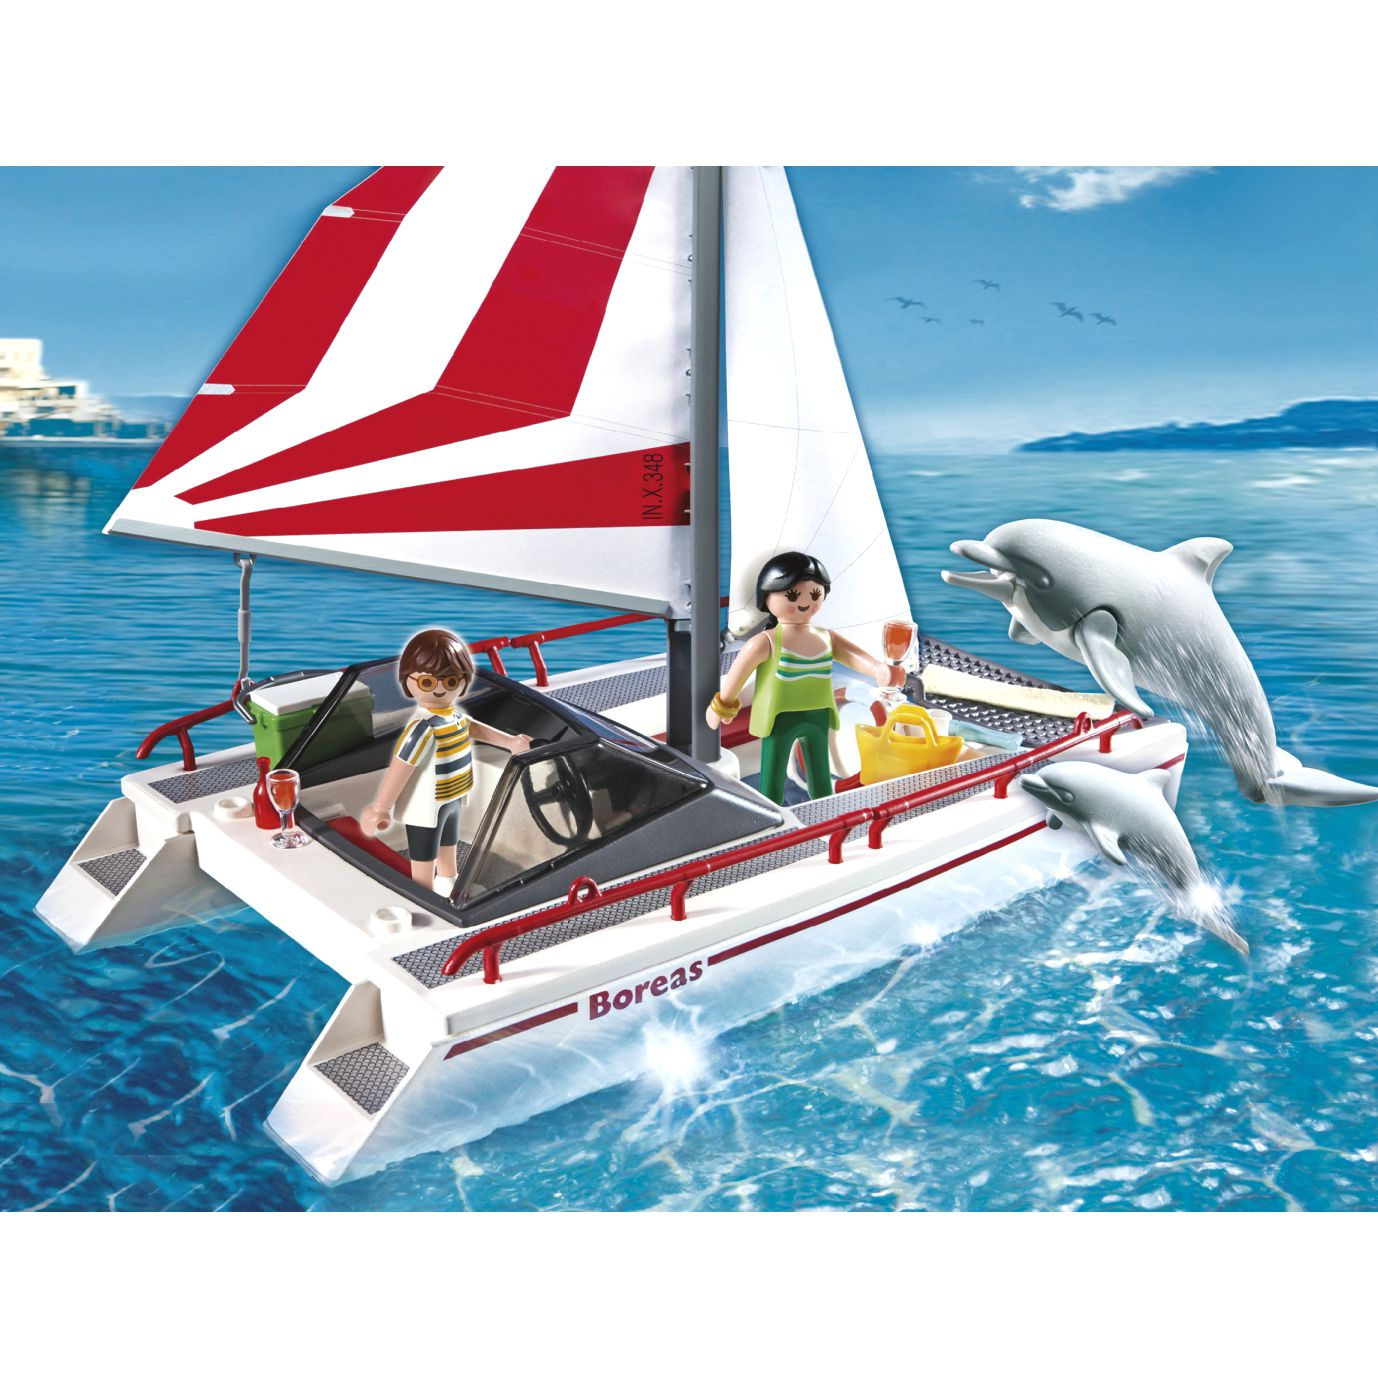 Playmobil Catamaran with Dolphin